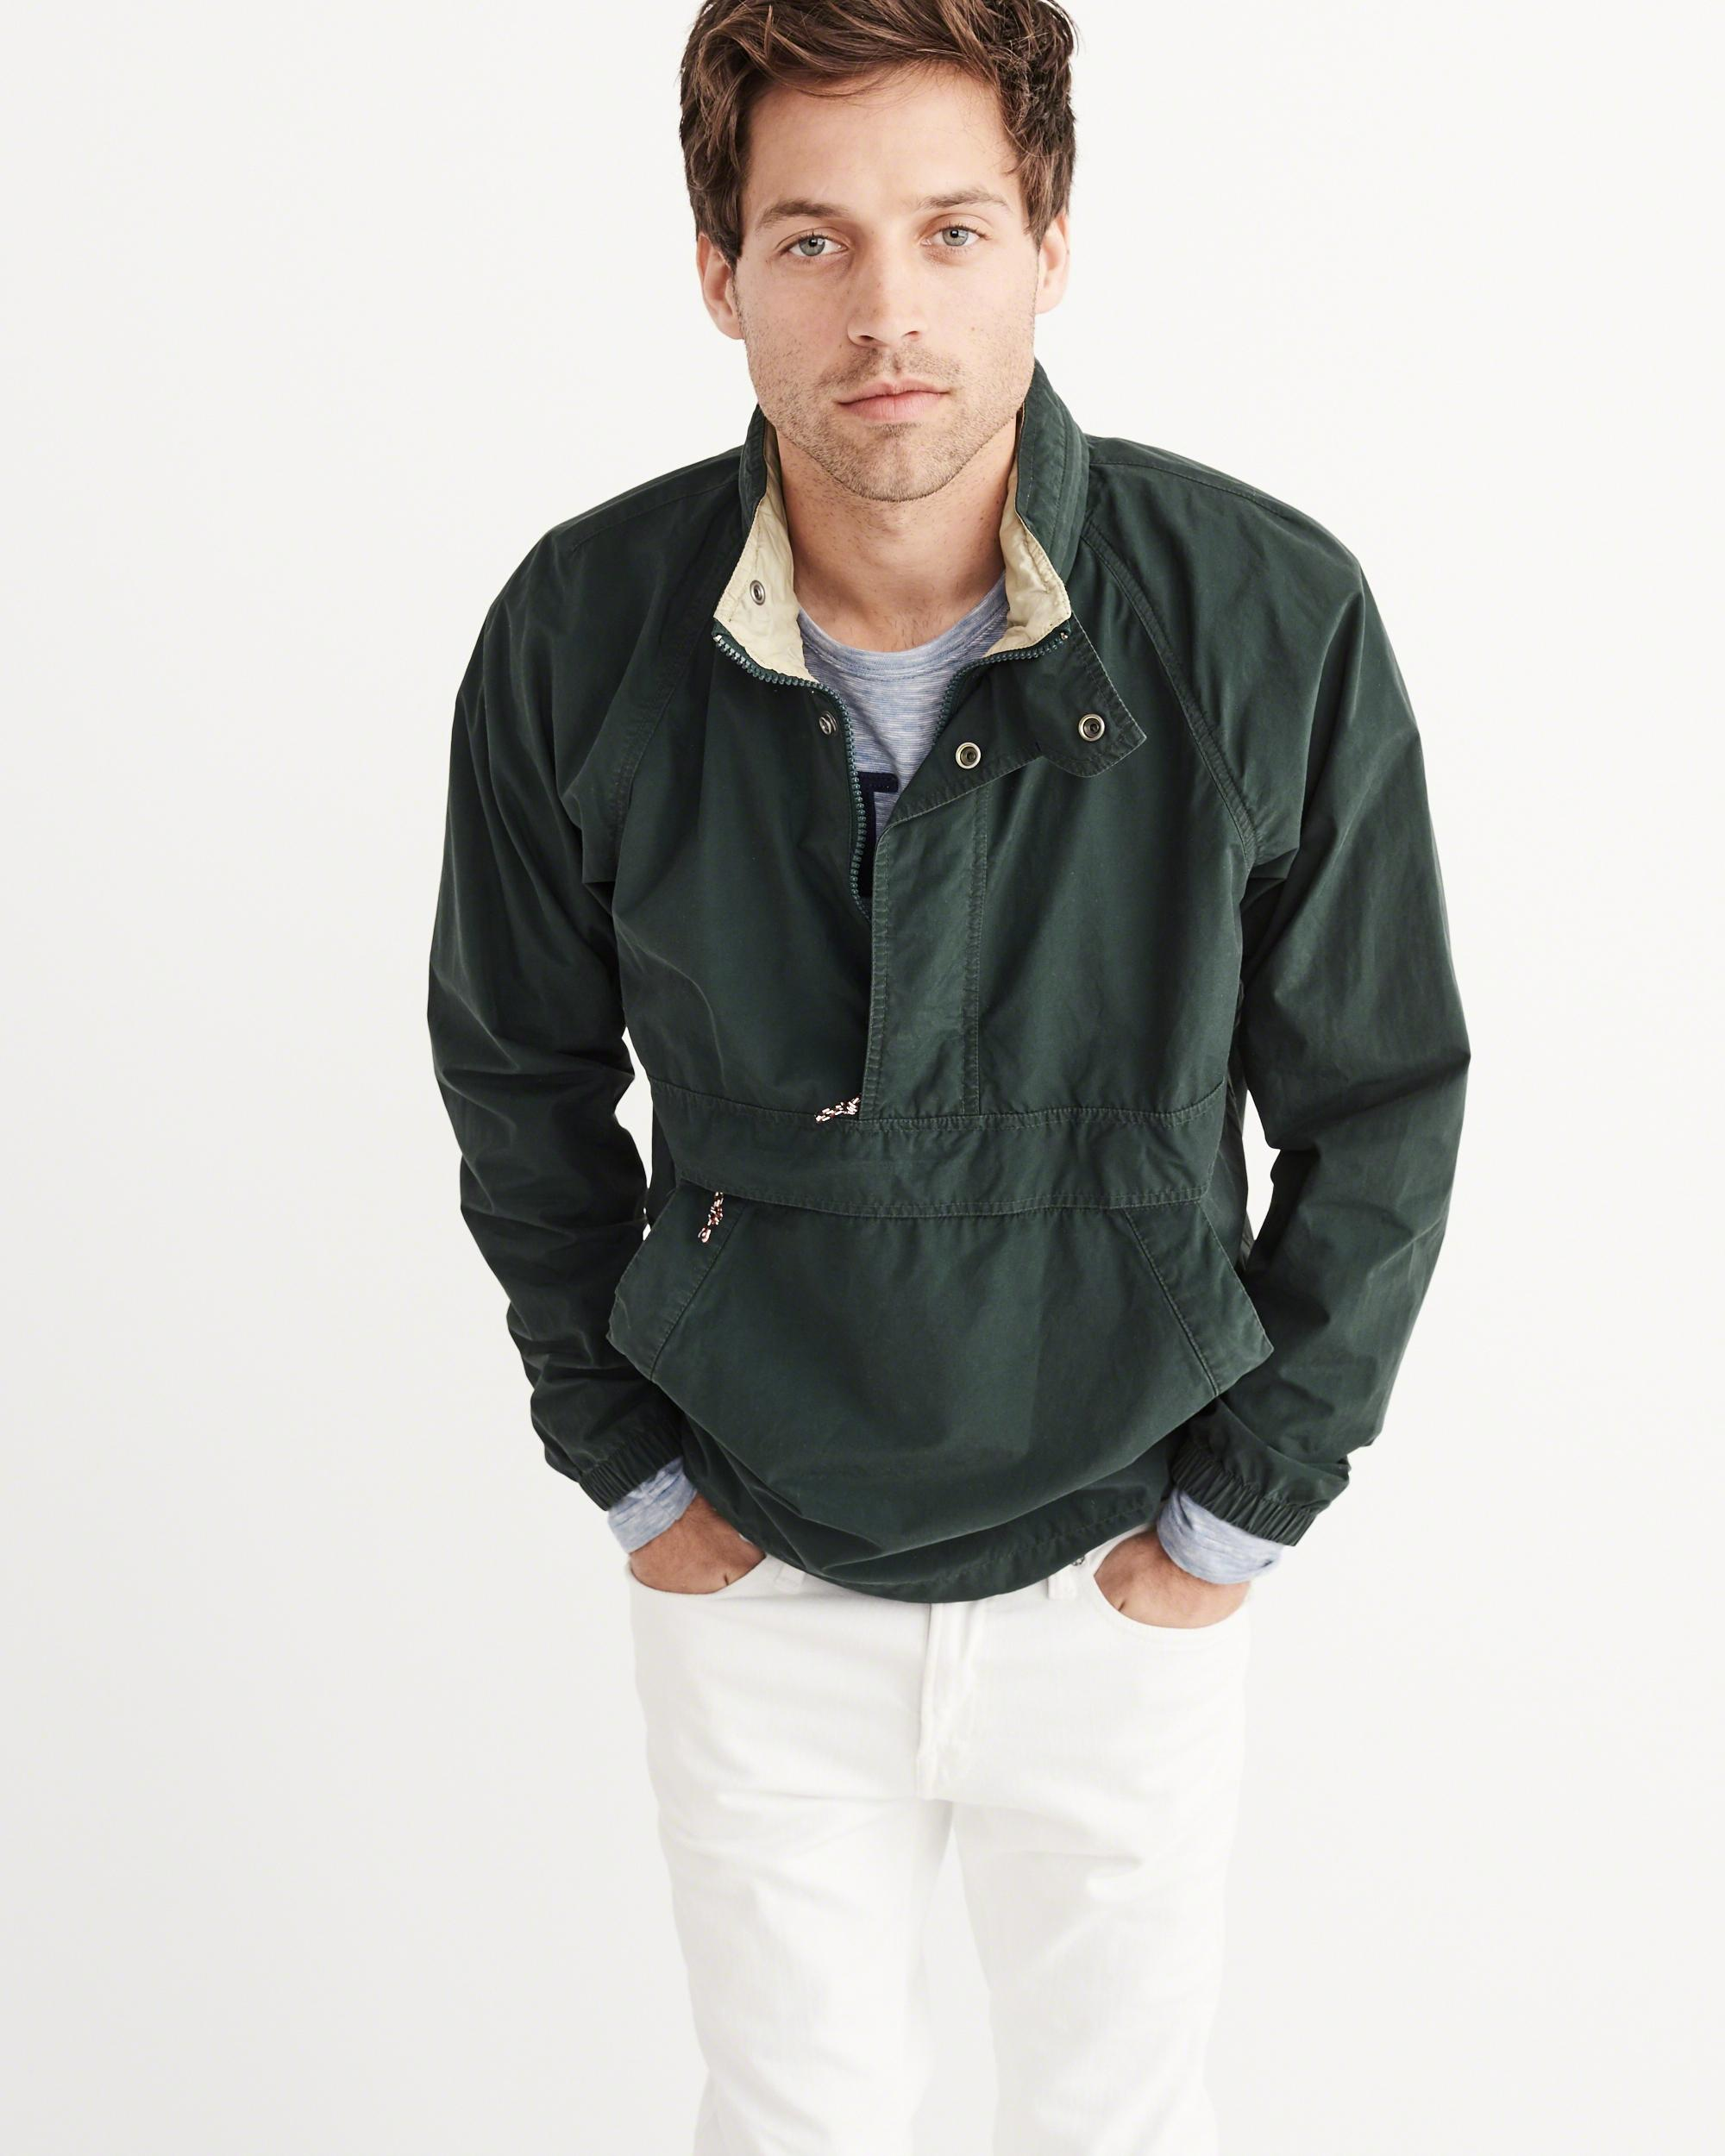 Abercrombie & Fitch Popover Jacket In Green For Men